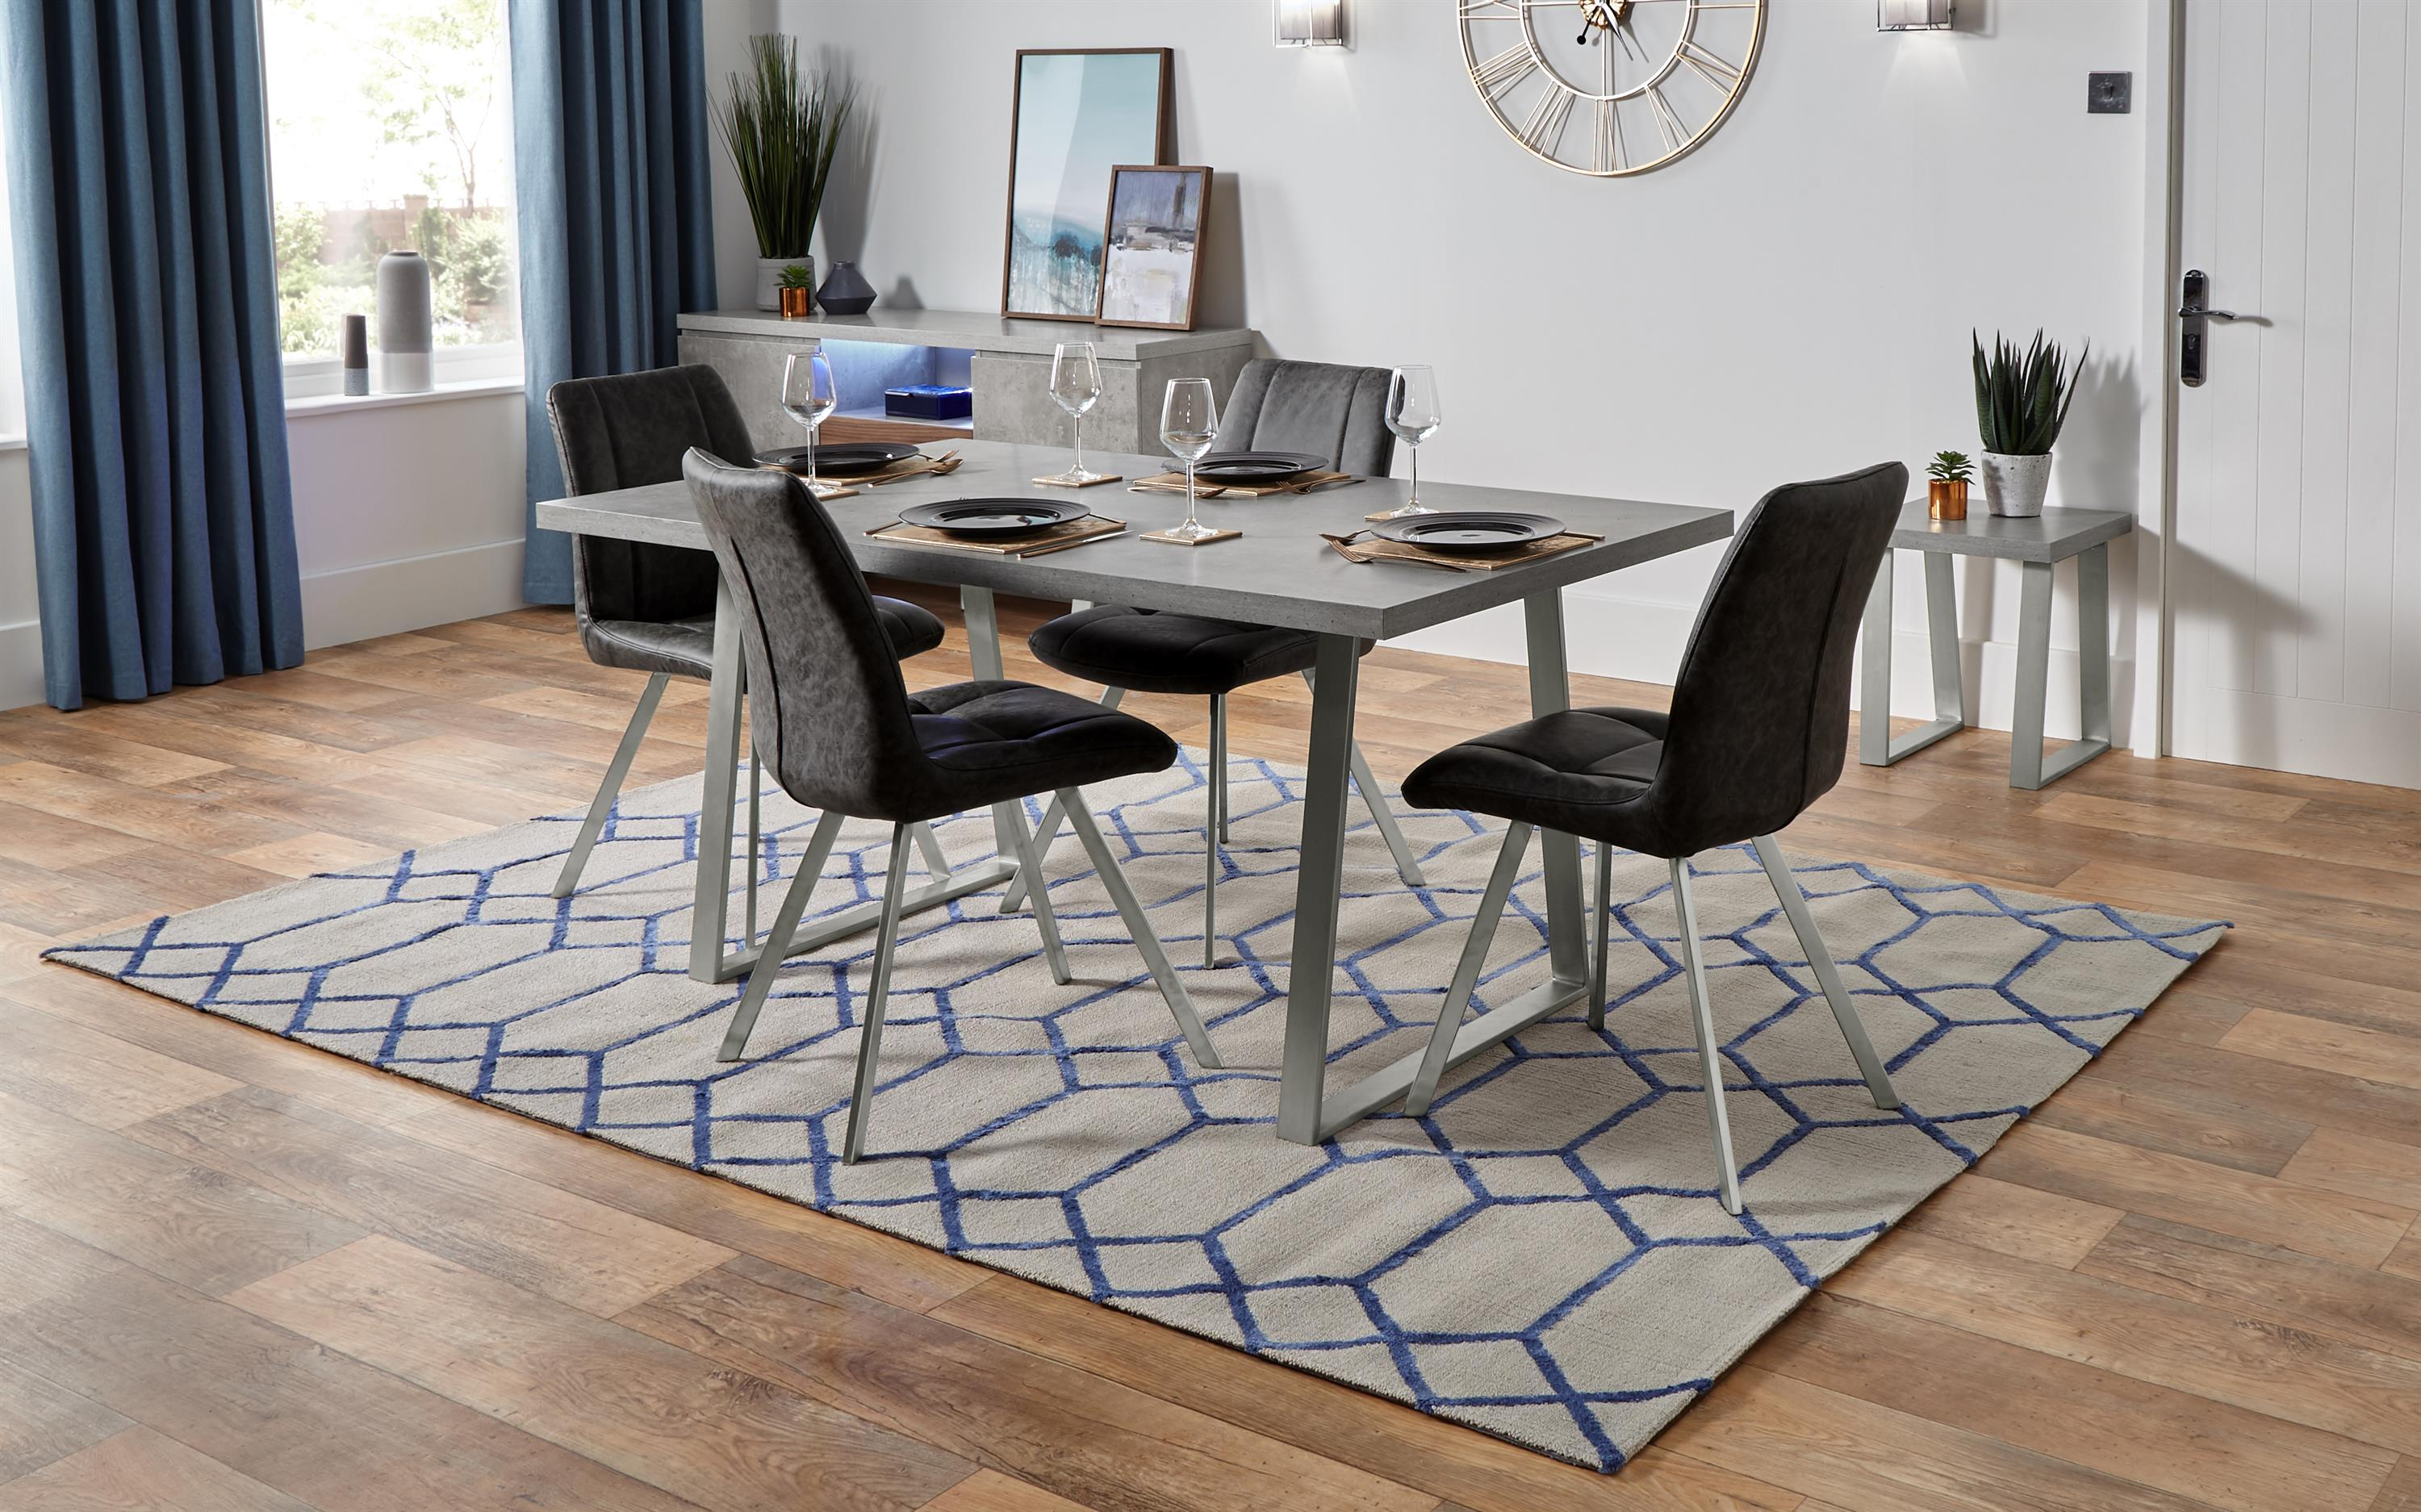 Endurance Diamond Dining Table & 4 Chairs